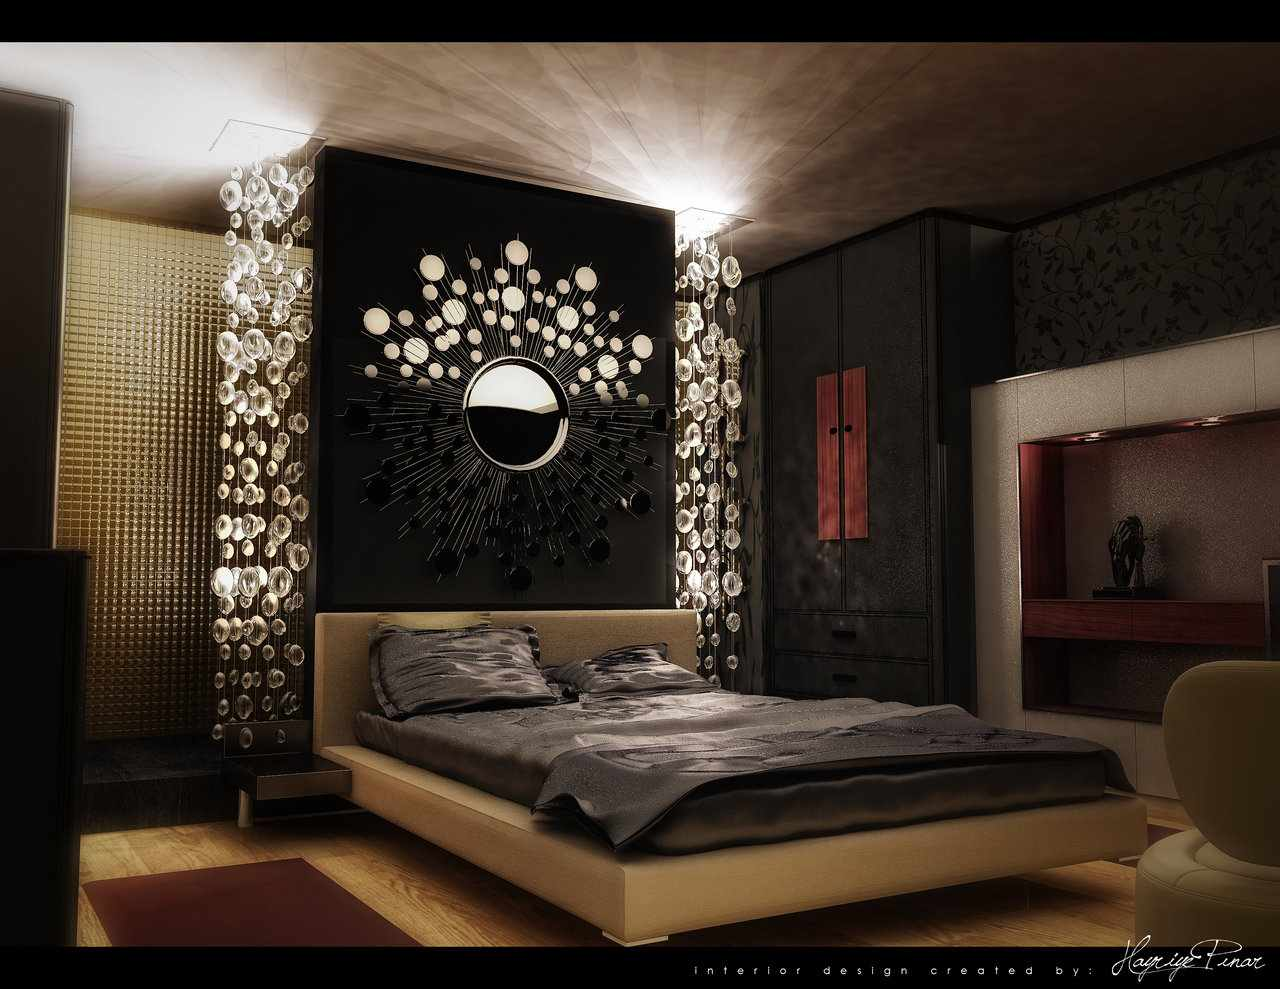 Ikea bedroom ideas ikea bedroom 2014 ideas exotic Bedroom design